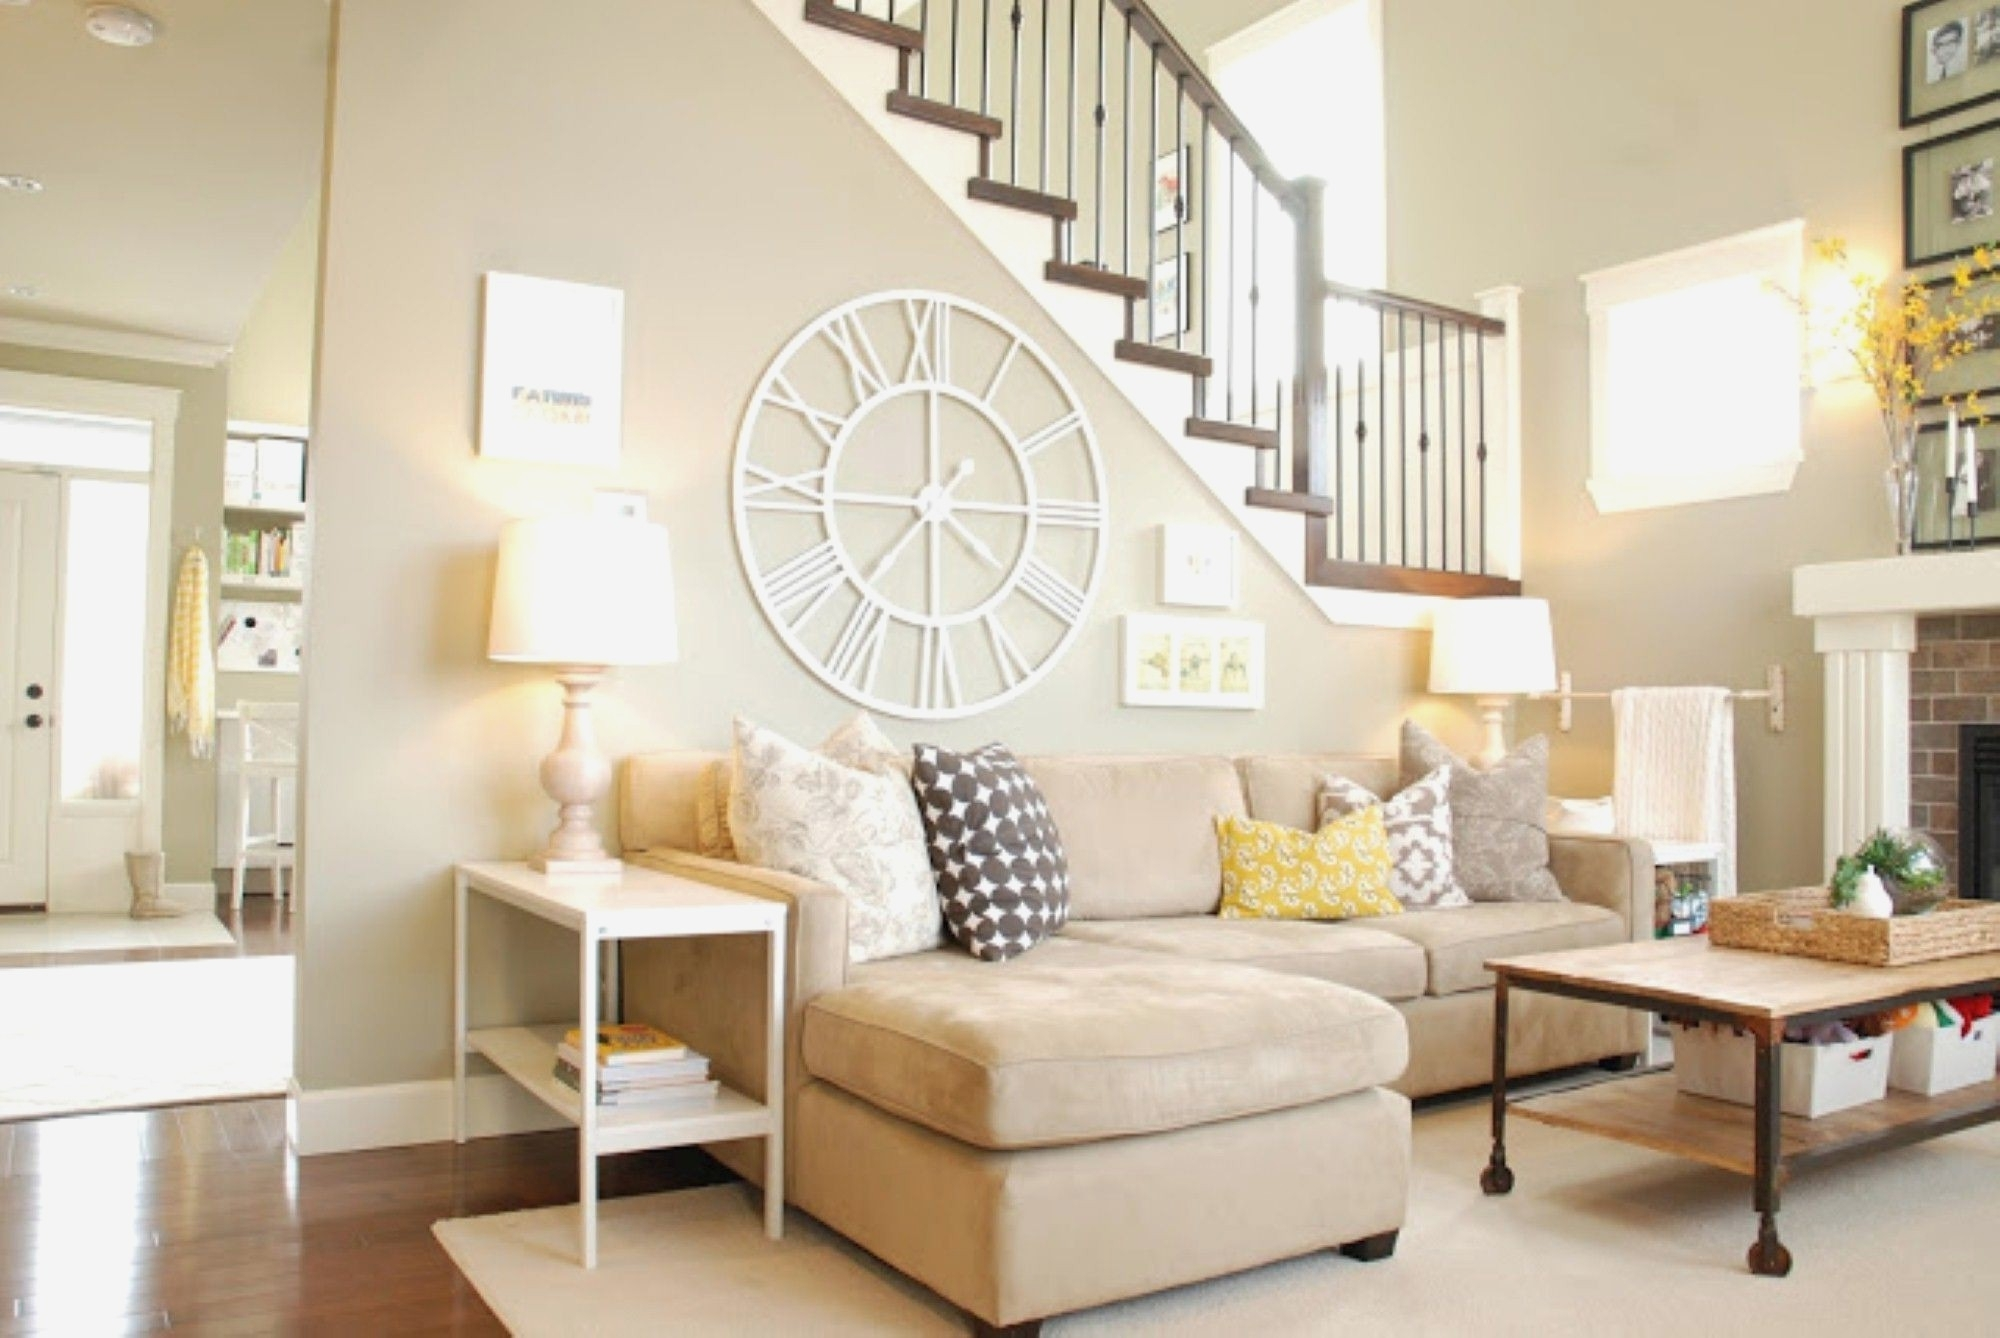 Neutral Living Room With Newest Neutral Color Wall Accents (View 13 of 15)